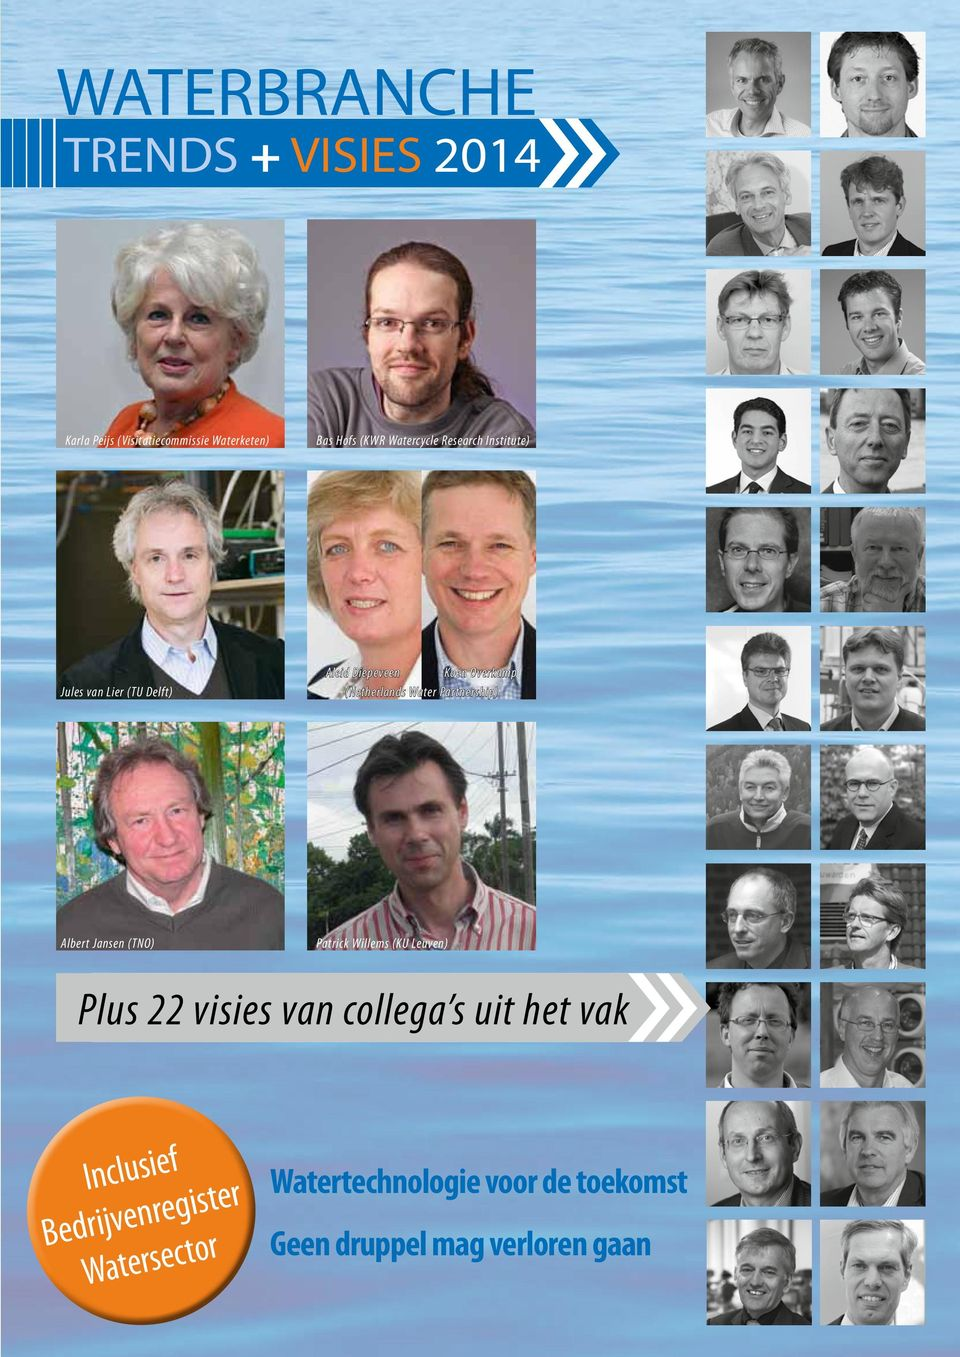 Water Partnership) Albert Jansen (TNO) Patrick Willems (KU Leuven) Plus 22 visies van collega s uit